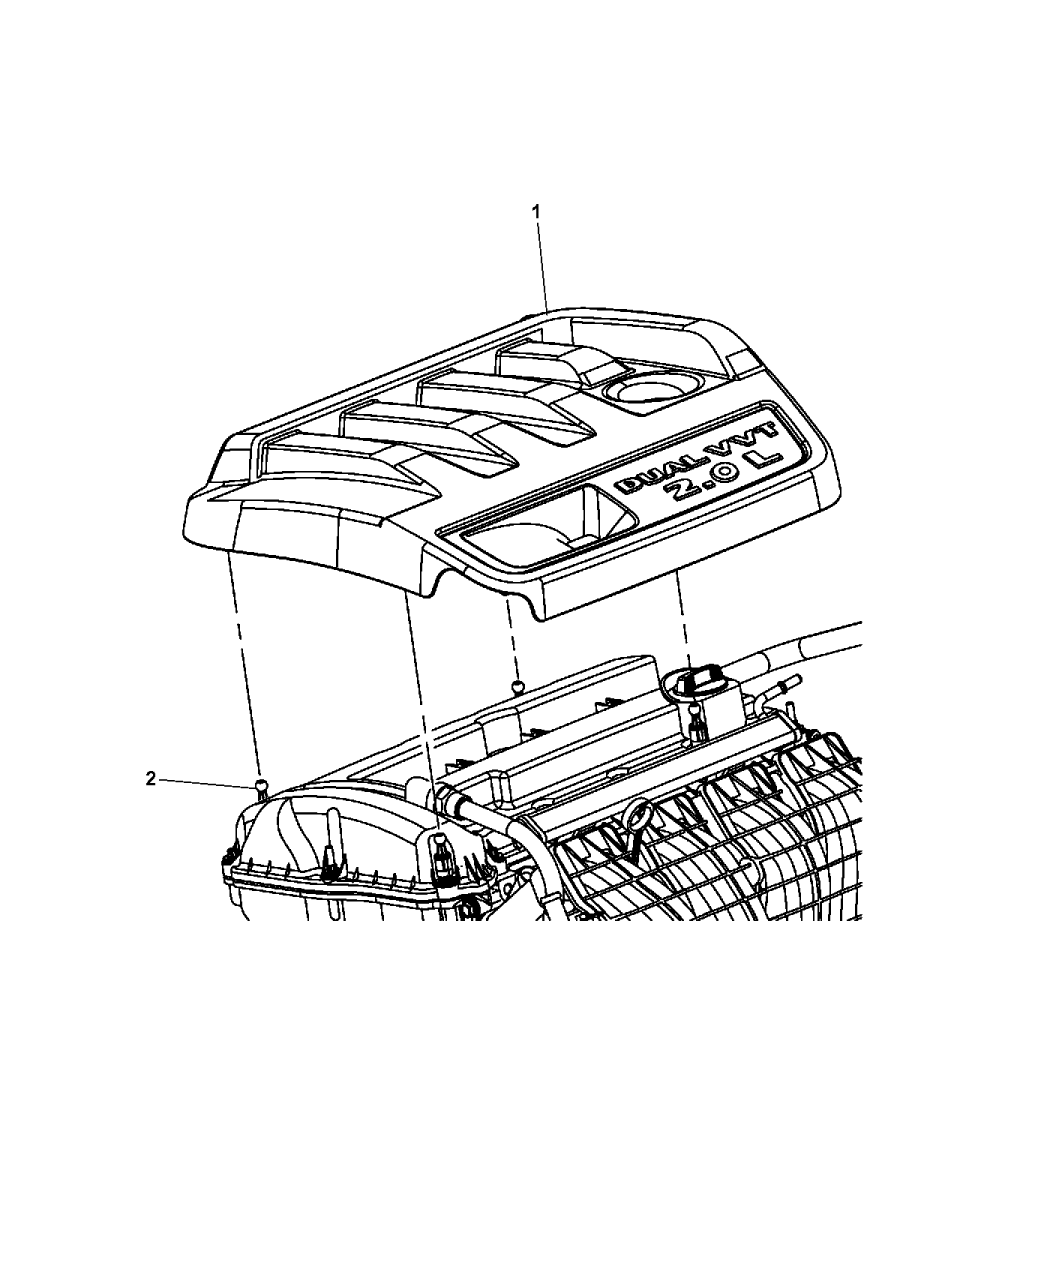 jeep 3 0 engine diagram 2014 jeep compass engine cover   related parts  2014 jeep compass engine cover